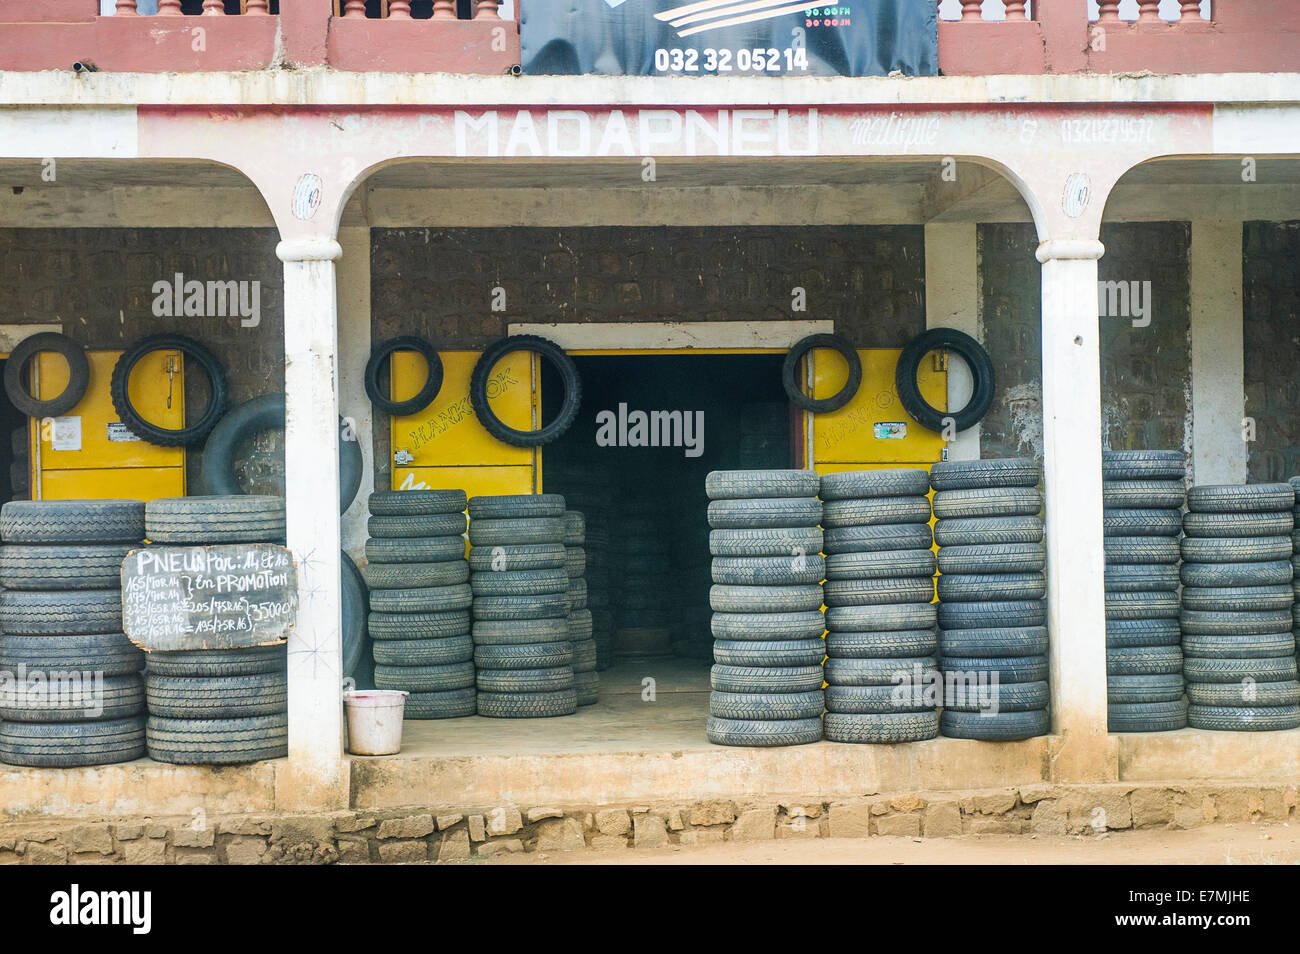 Outside a tyre supplier's premises in Madagascar - Stock Image